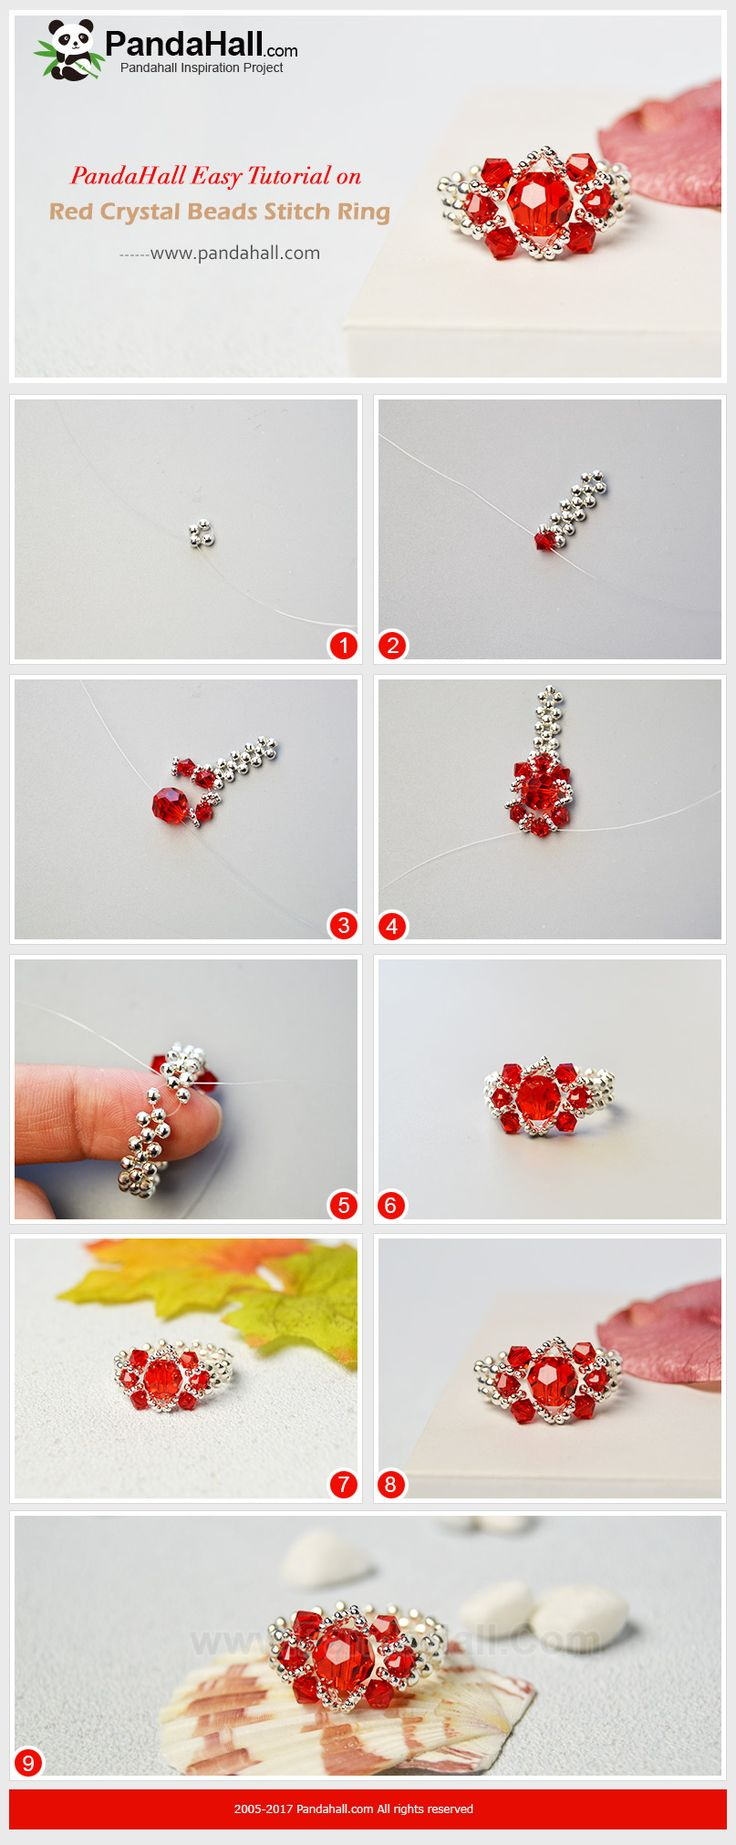 PandaHall Inspiration Project---Red Crystal Beads Stitch Ring PandaHall Beads APP is on, download here>>>goo.gl/jLxpjp 2018 New Year Sale: UP TO 75% OFF,FREE SHIPPING over $349 from Jan 2-23,  Free Coupons: PHENPIN5 (Save $5 for $70+) PHENPIN7(Save $7 for